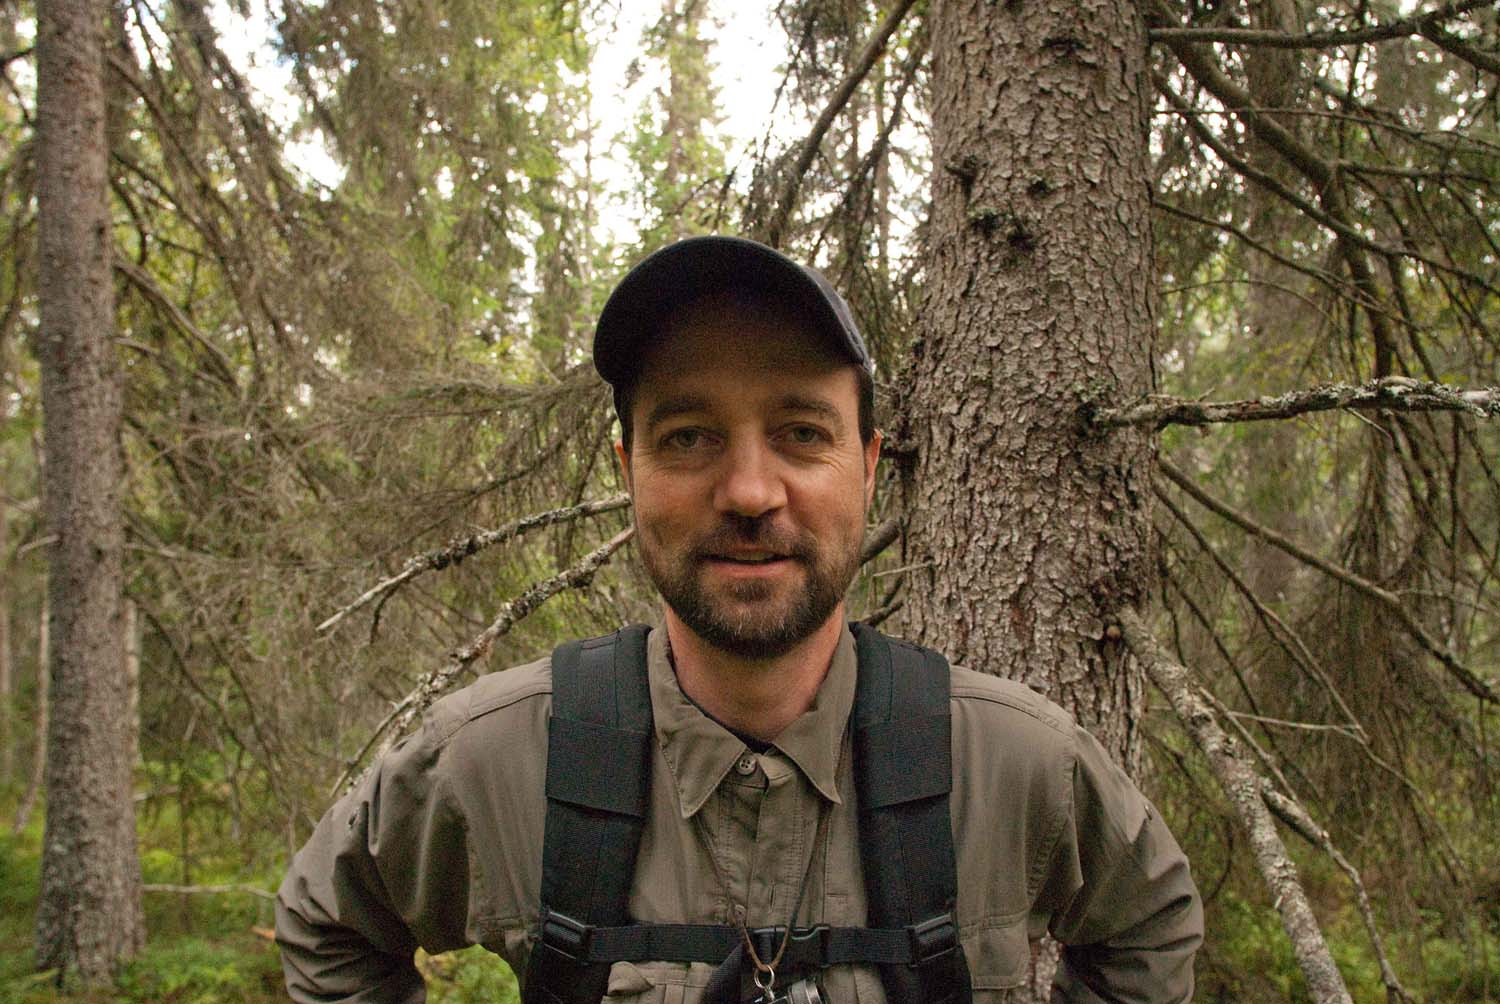 On assignment in Sweden's old growth forests